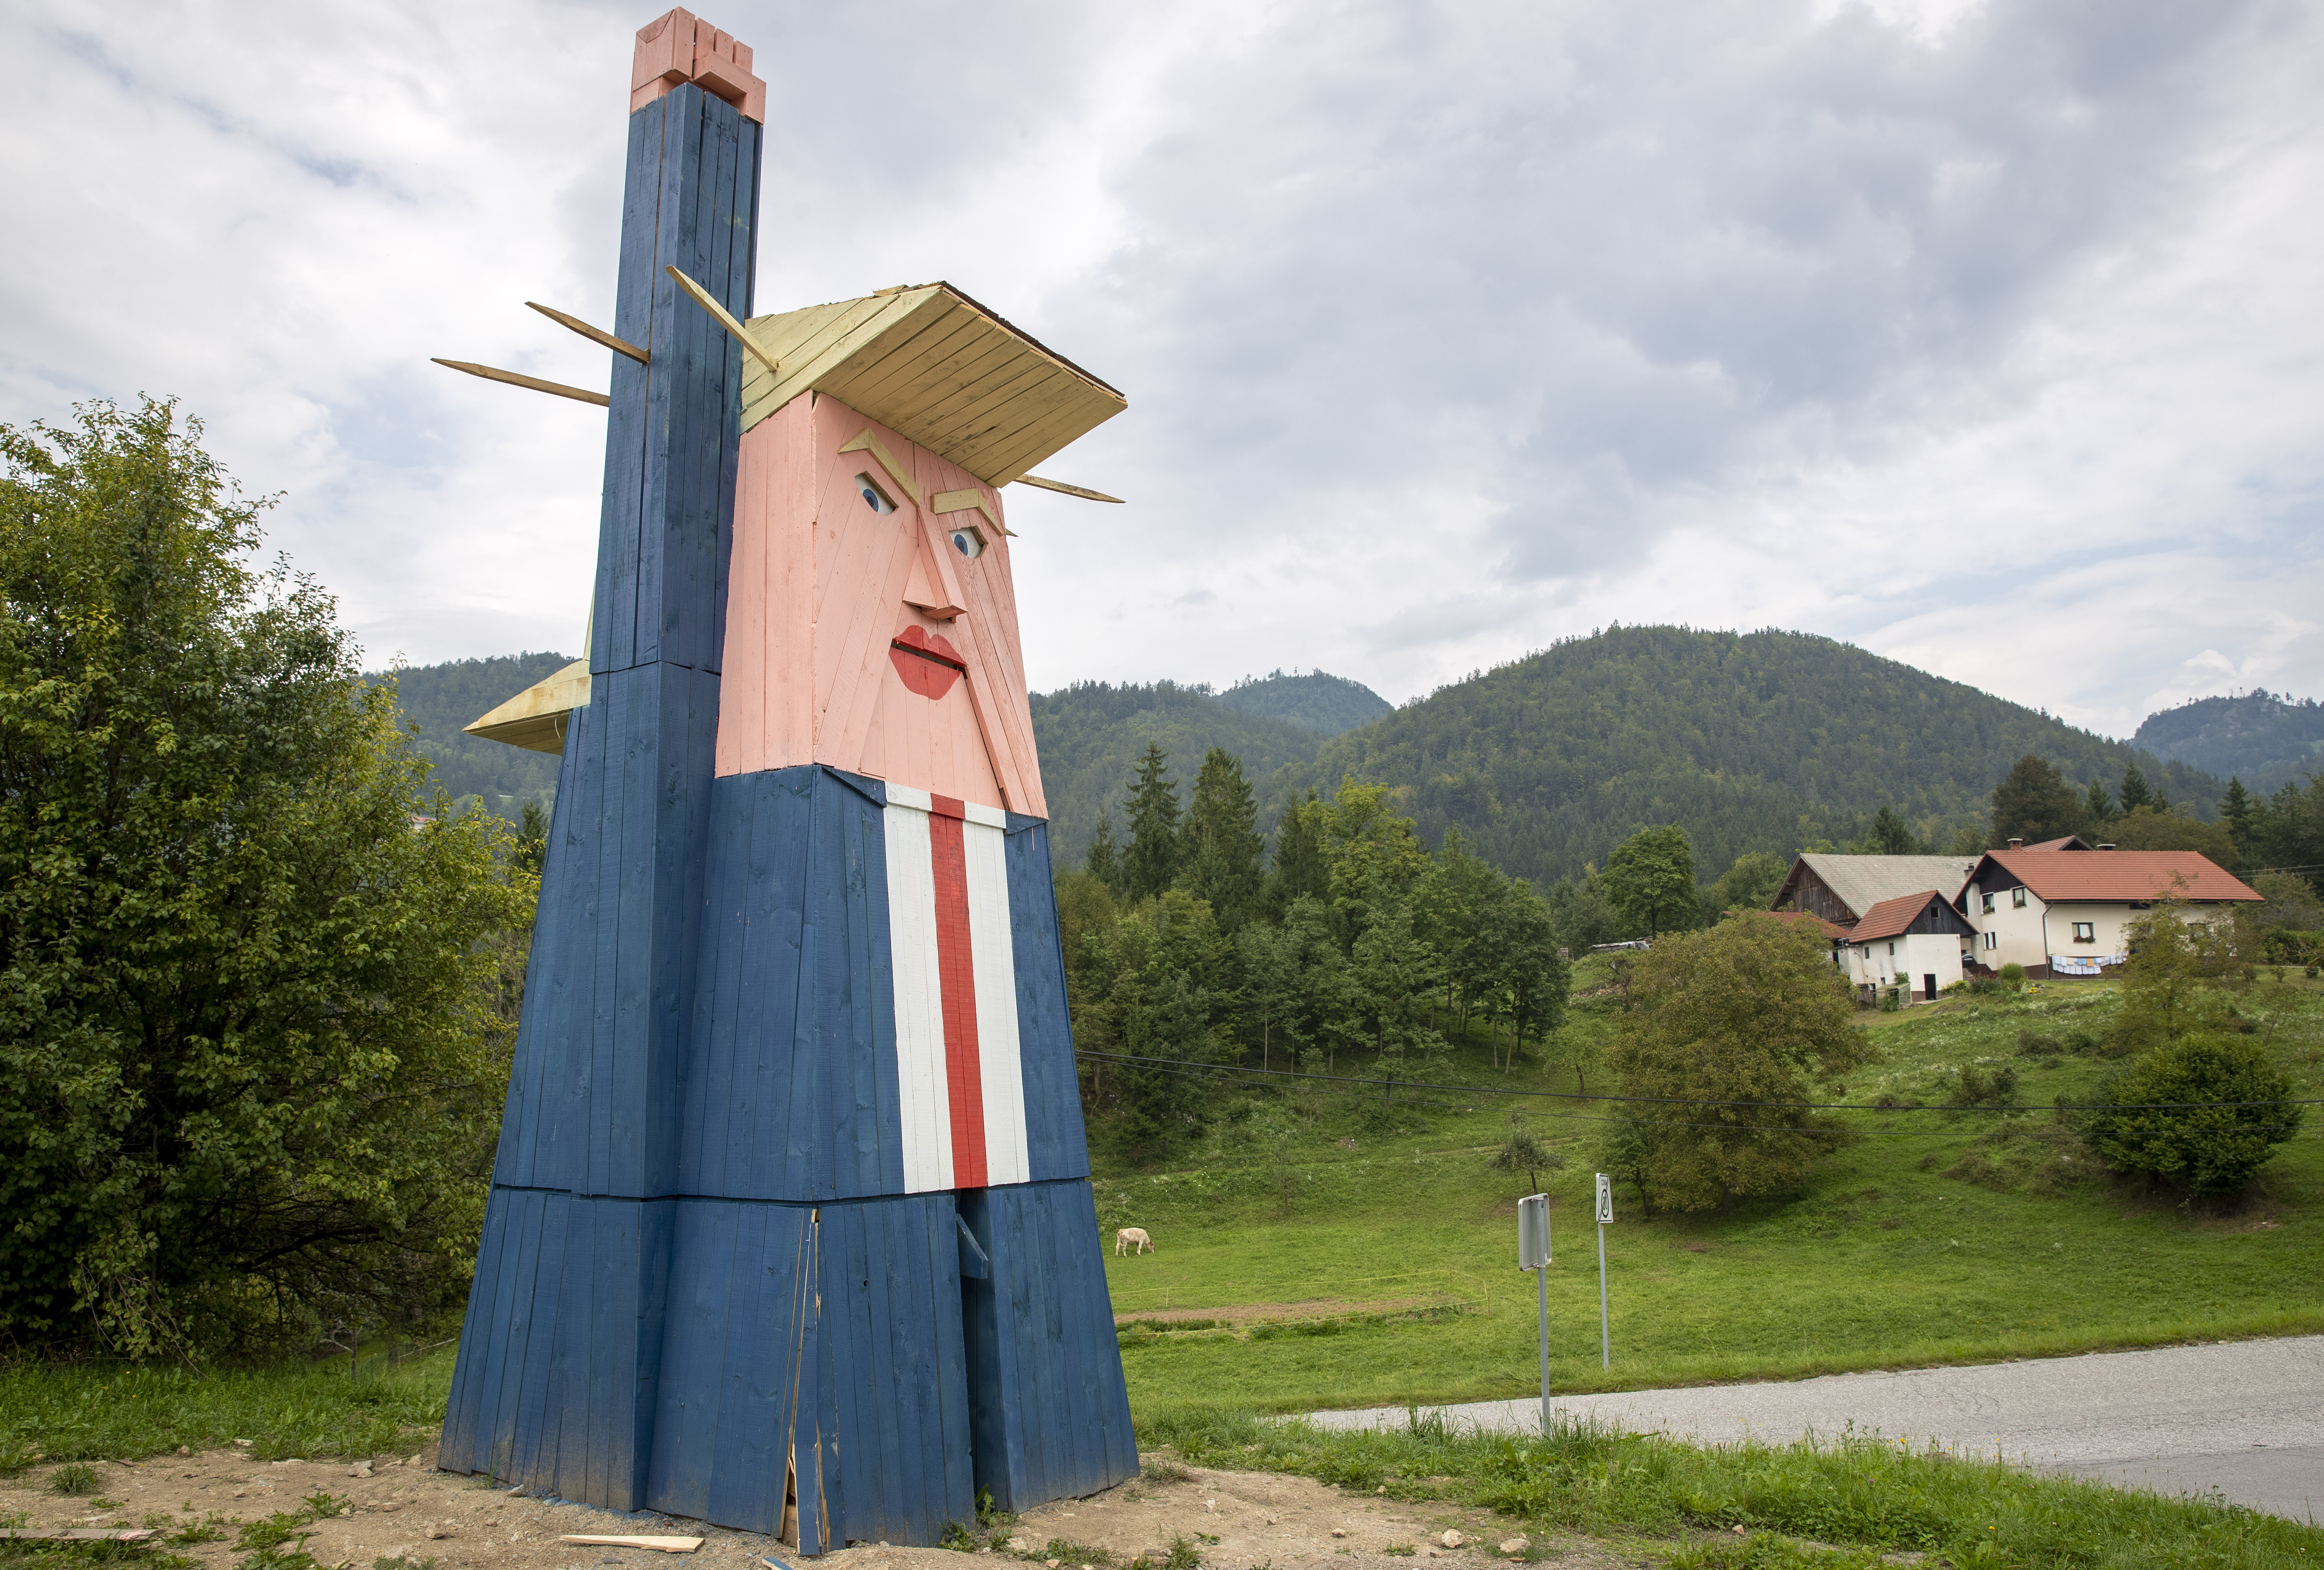 This file photo from Aug. 30, 2019 shows a wooden statue of Donald Trump near Kamnik, Slovenia.